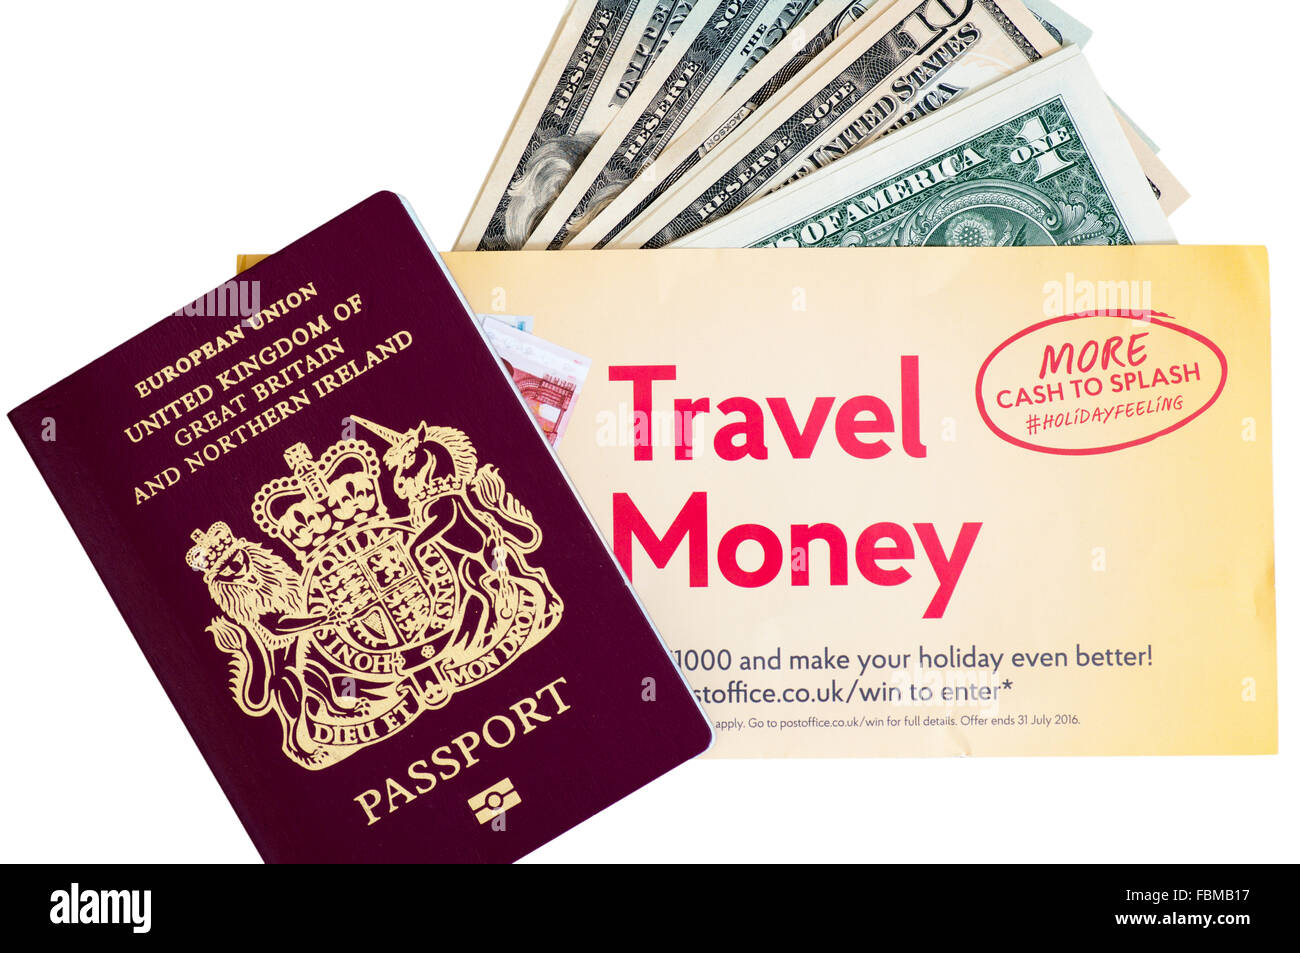 Post Office Travel Money American Dollars USD Notes Currency with UK Chipped Passport Cut Out - Stock Image